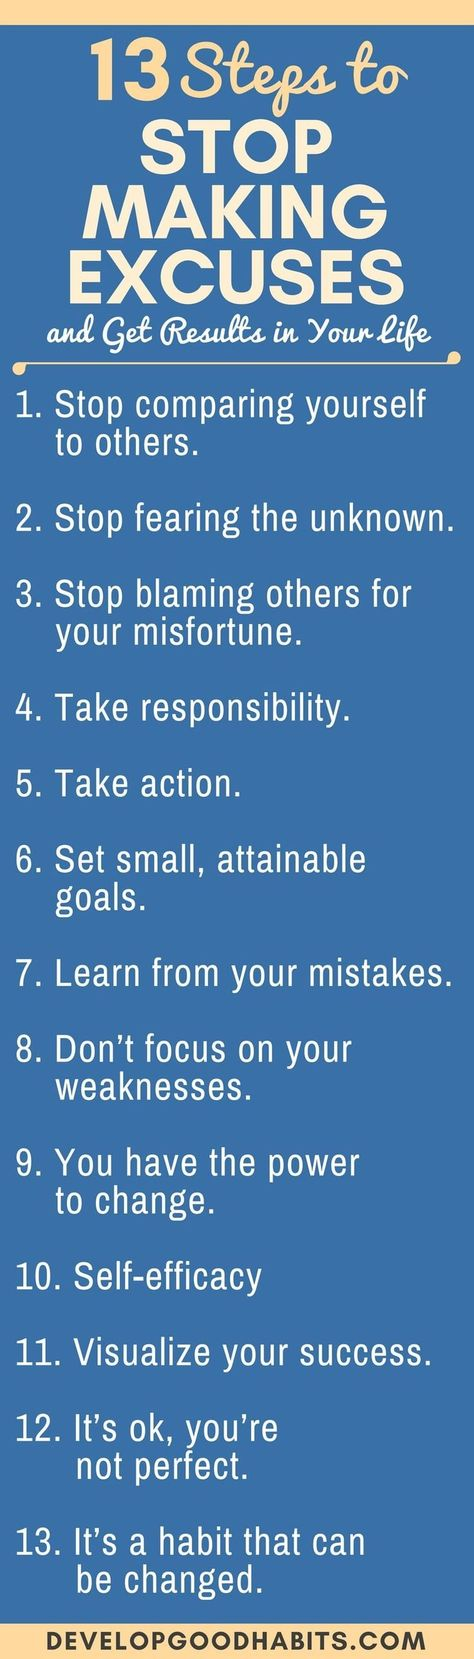 13 Steps to Stop Making Excuses and Take Responsibility